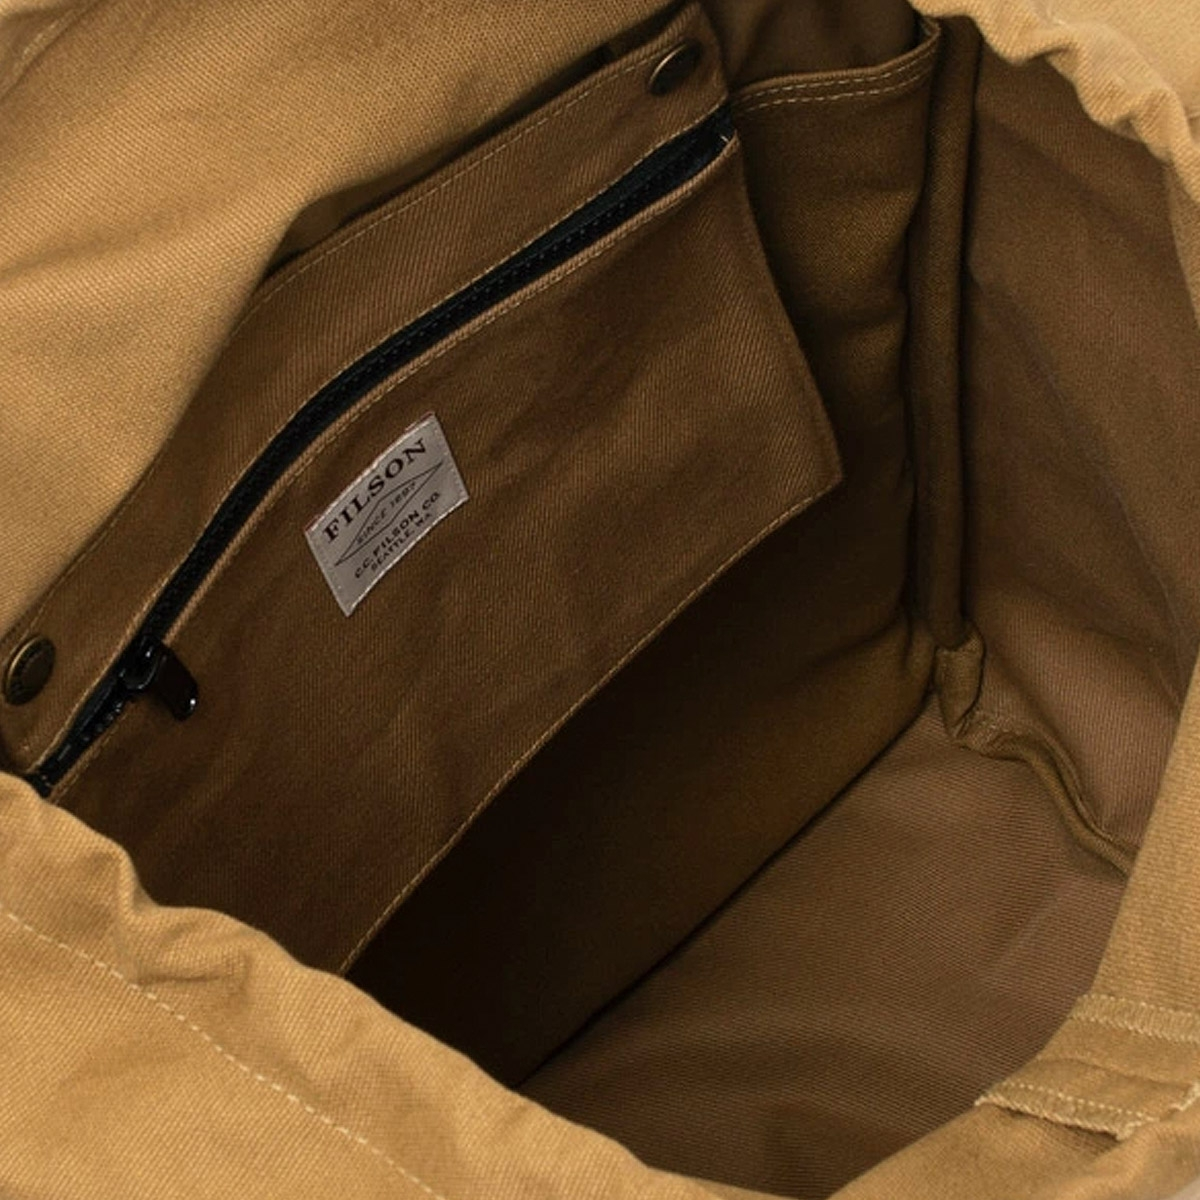 Filson Ranger Backpack 20137828 Tan a rugged, vintage inspired, backpack